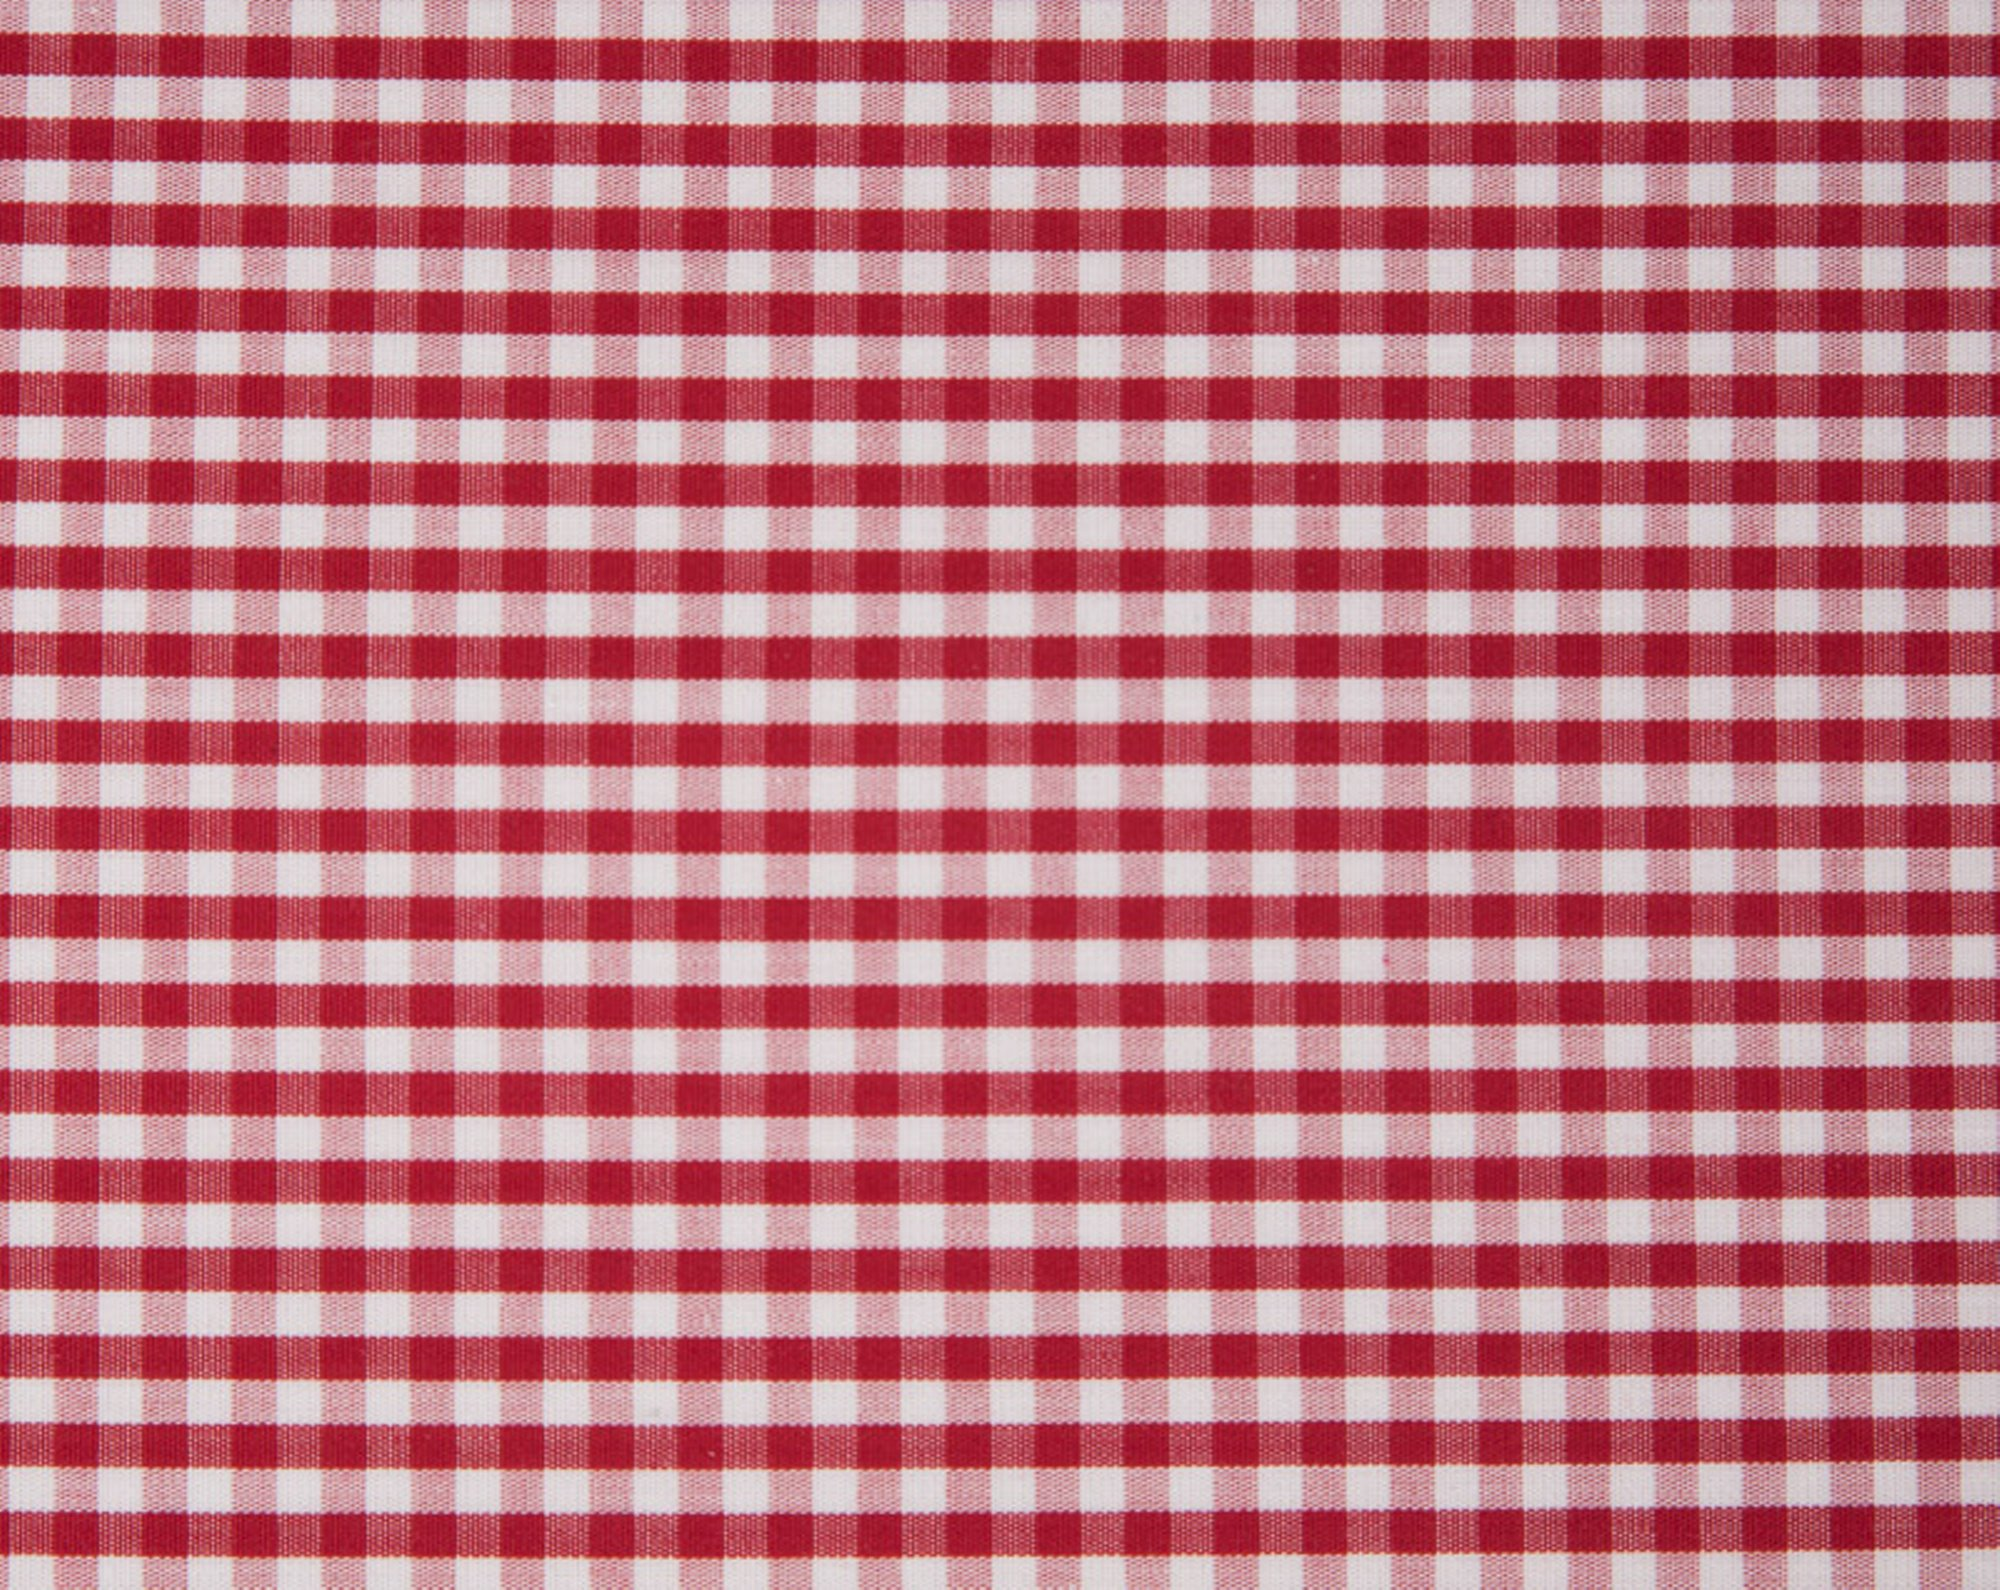 Seaside Check Pillowcase, Red/White